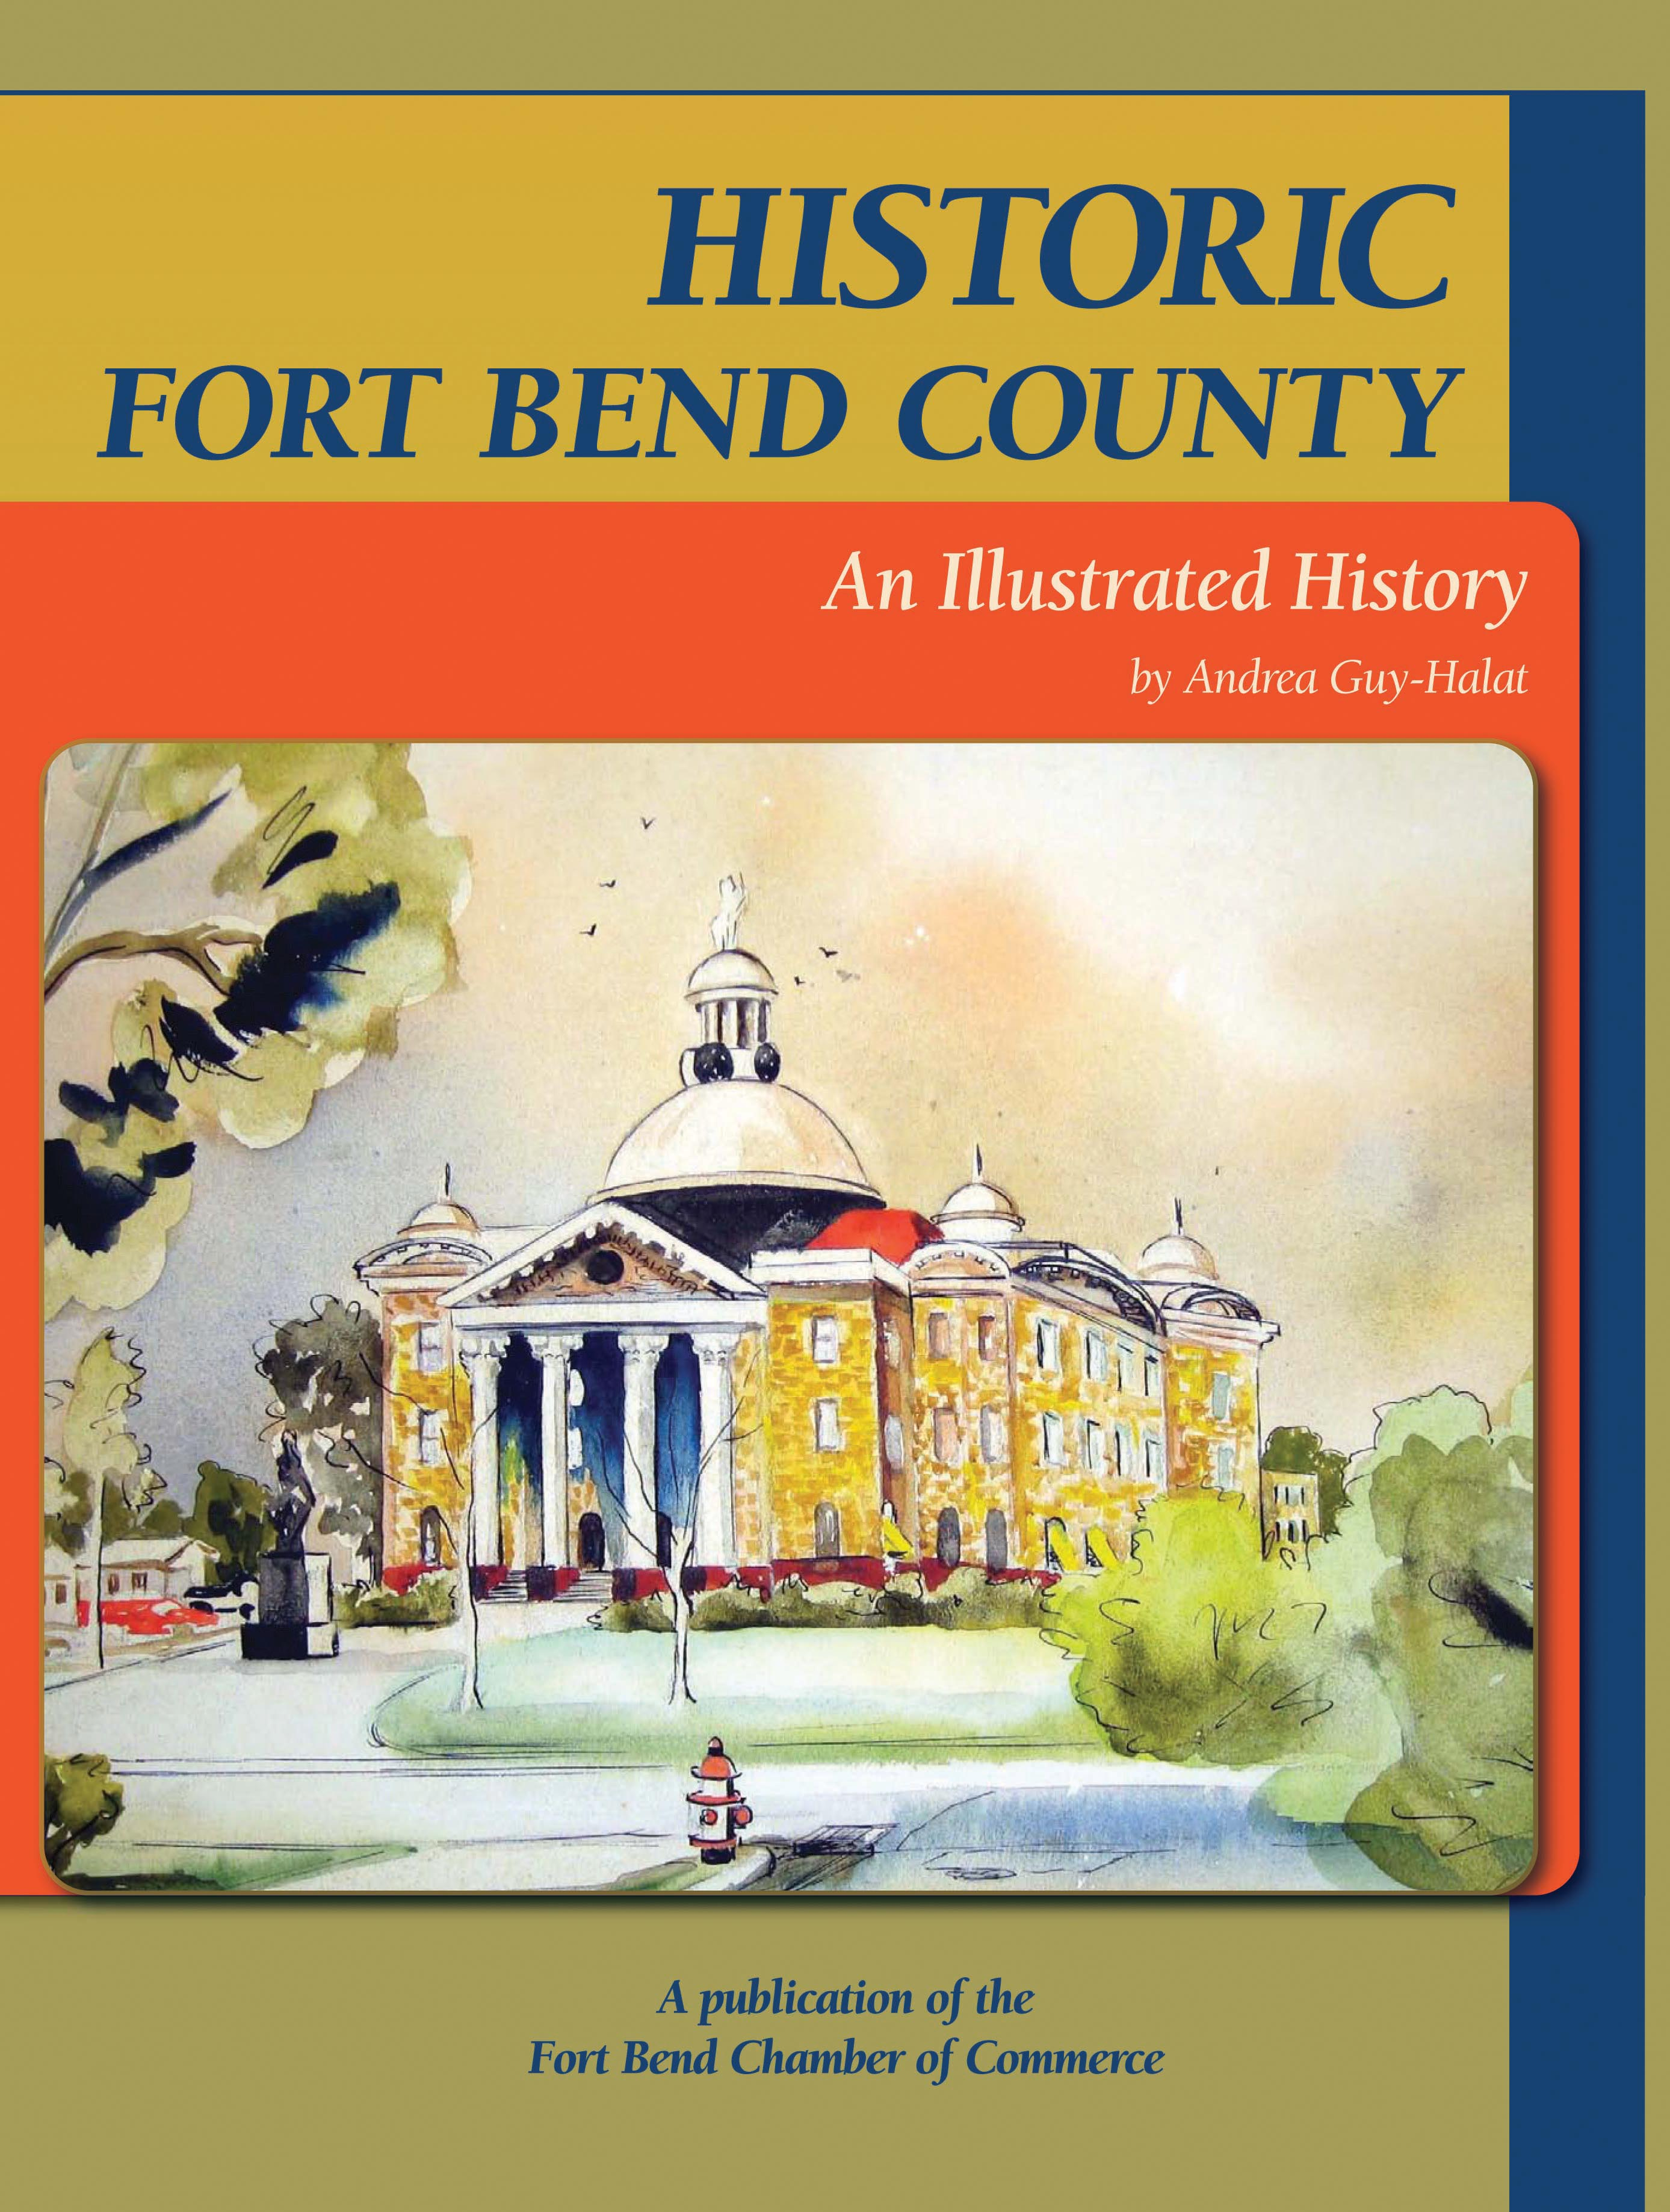 Historic Fort Bend County